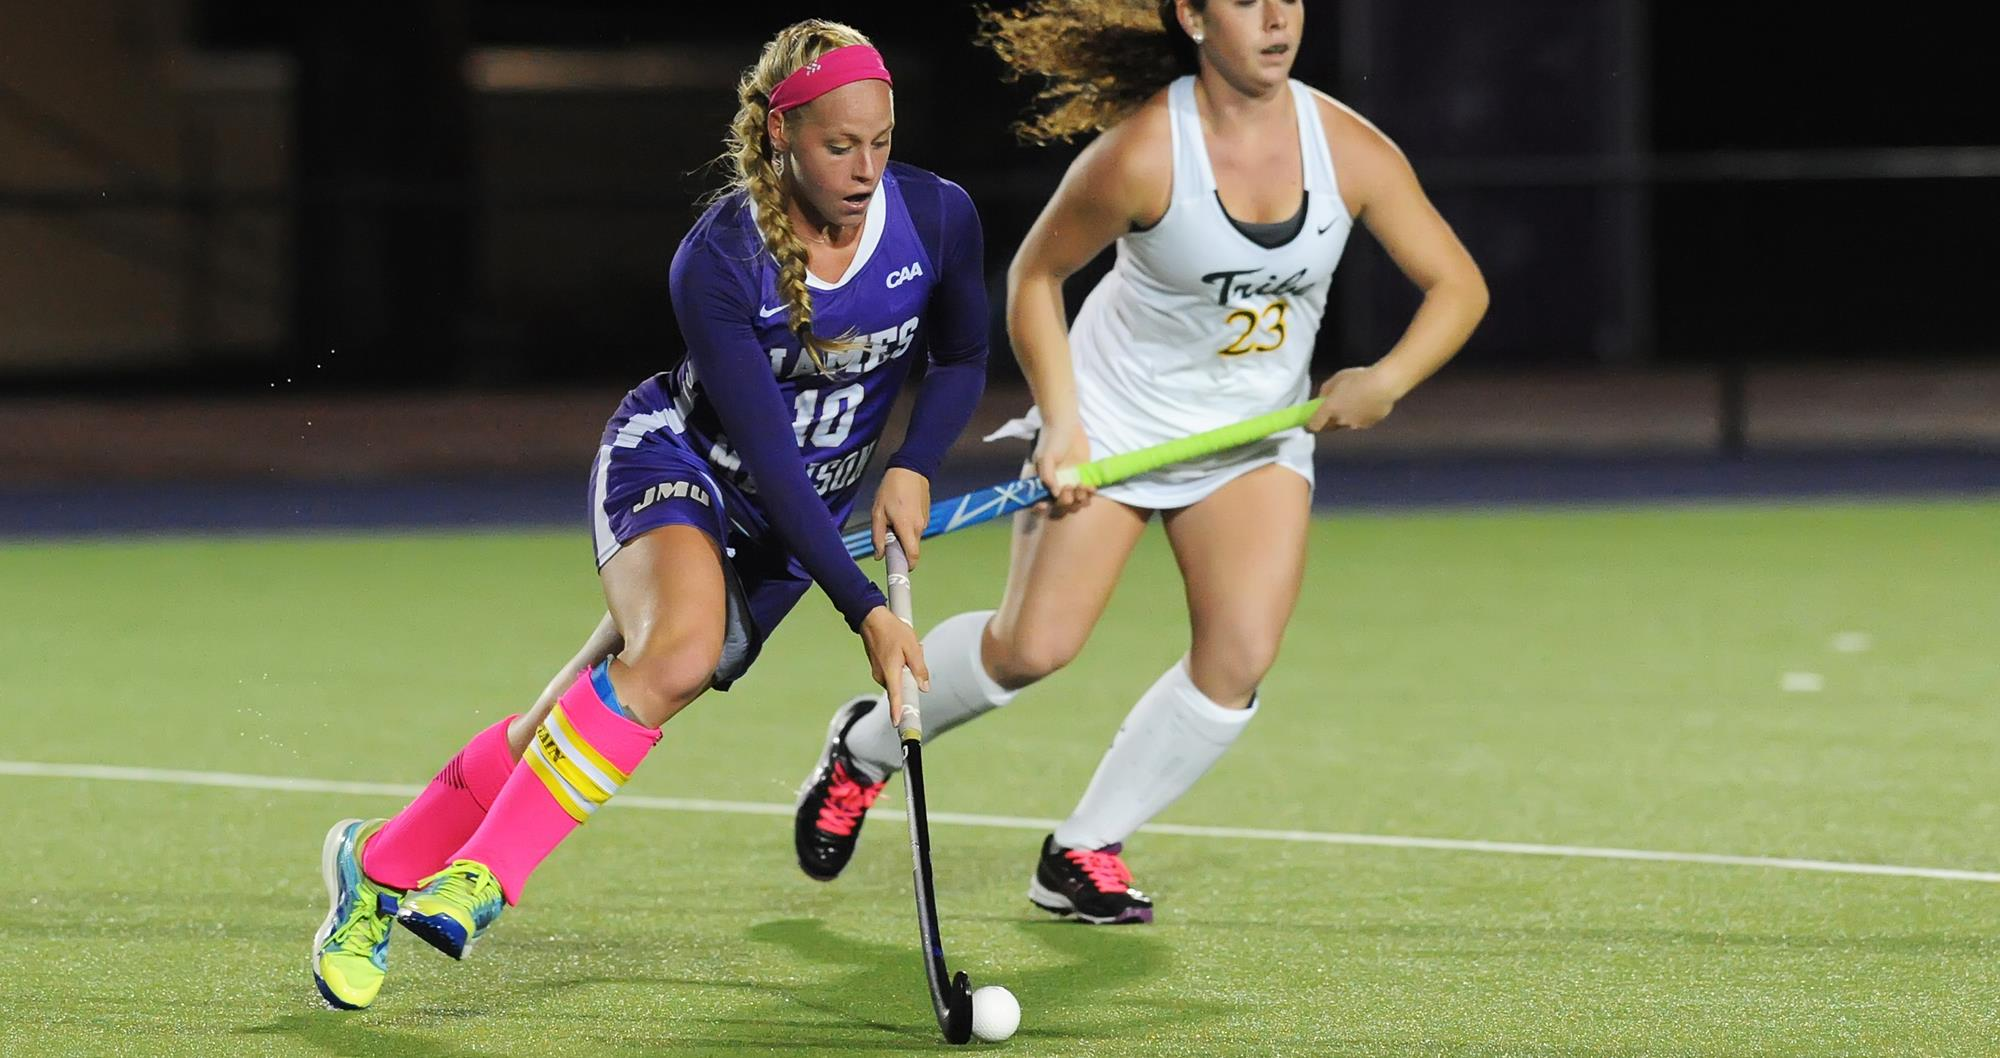 Field Hockey: No. 17 JMU Falls 4-3 to William & Mary in Overtime